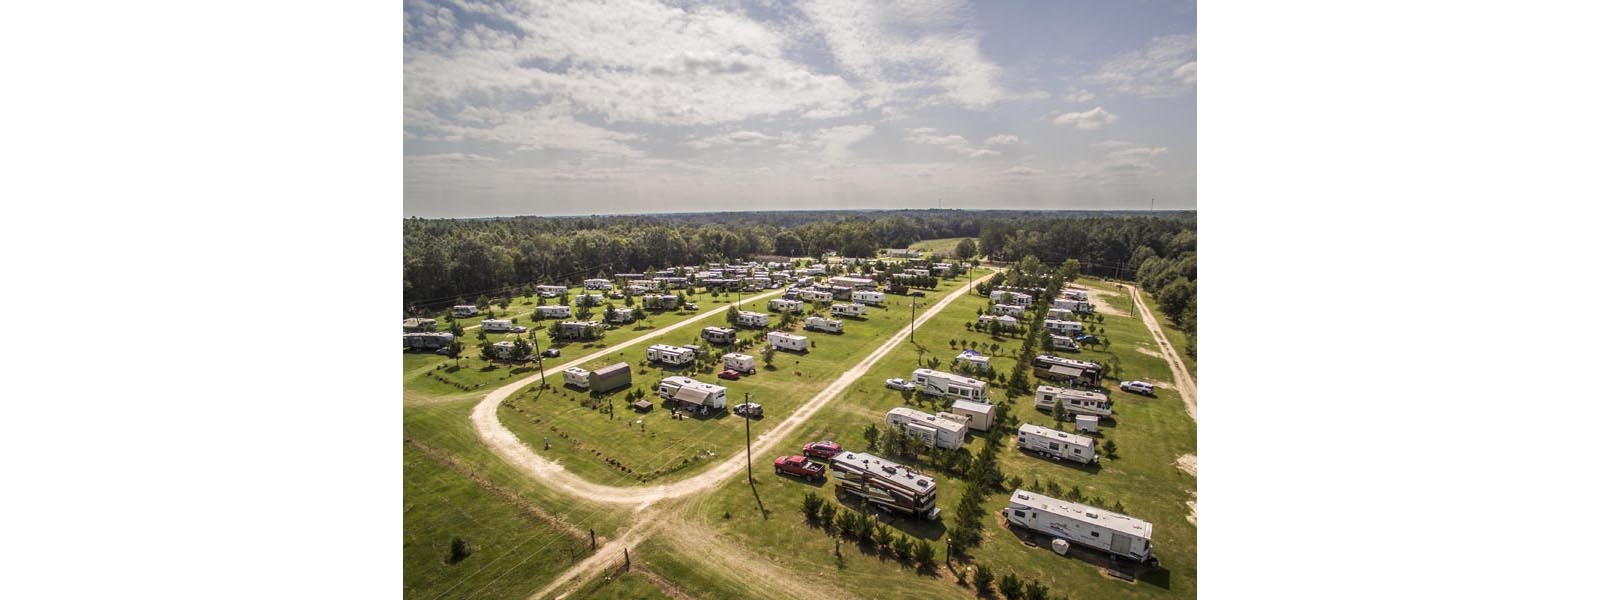 Arial view of A-Okay campground